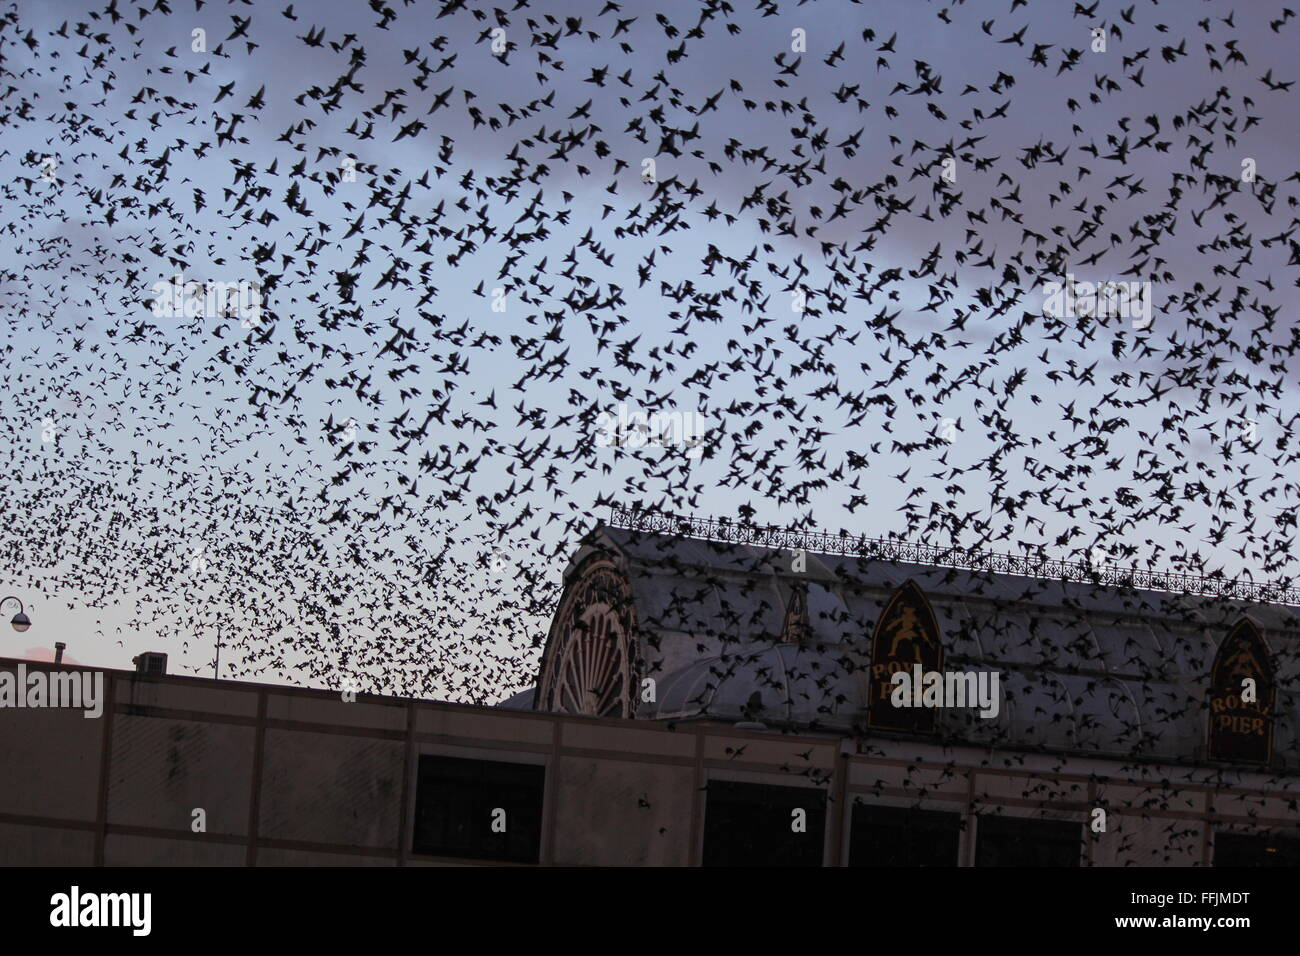 Aberystwyth, Wales. UK. 15th February, 2016. UK Weather: Sunrise when thousands of starlings take off from their Stock Photo